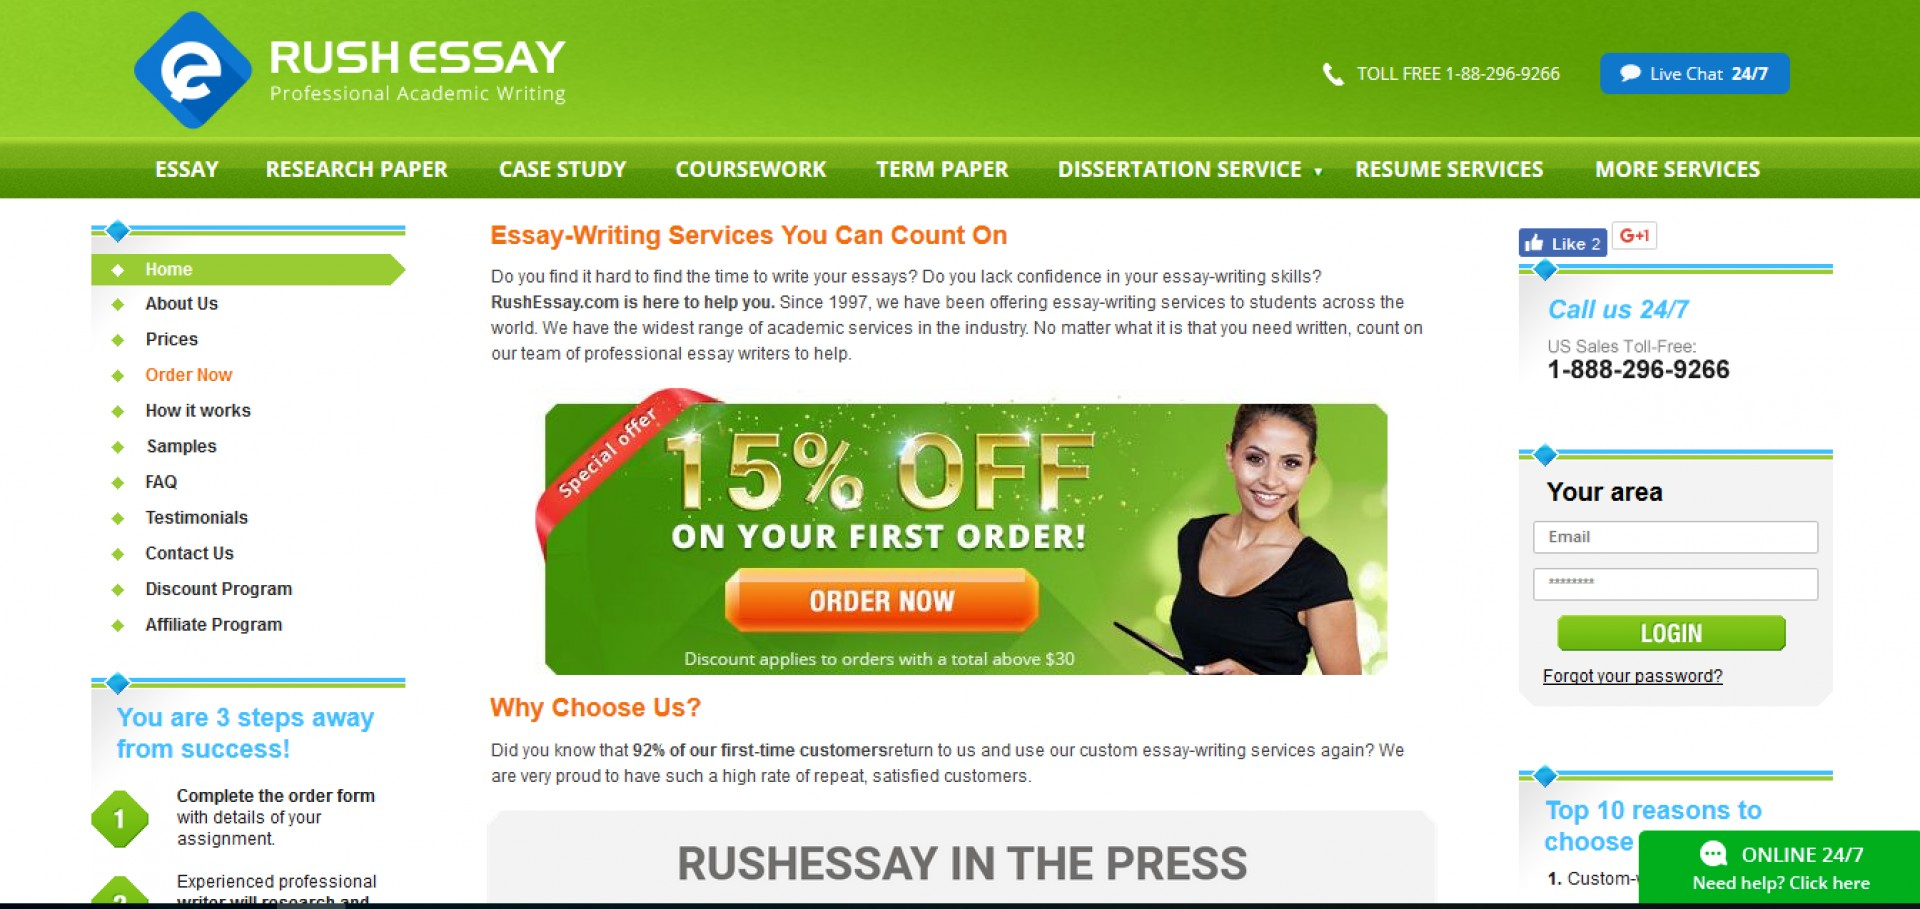 009 Rush Essay Review Rushessay Best My Reviews 1920